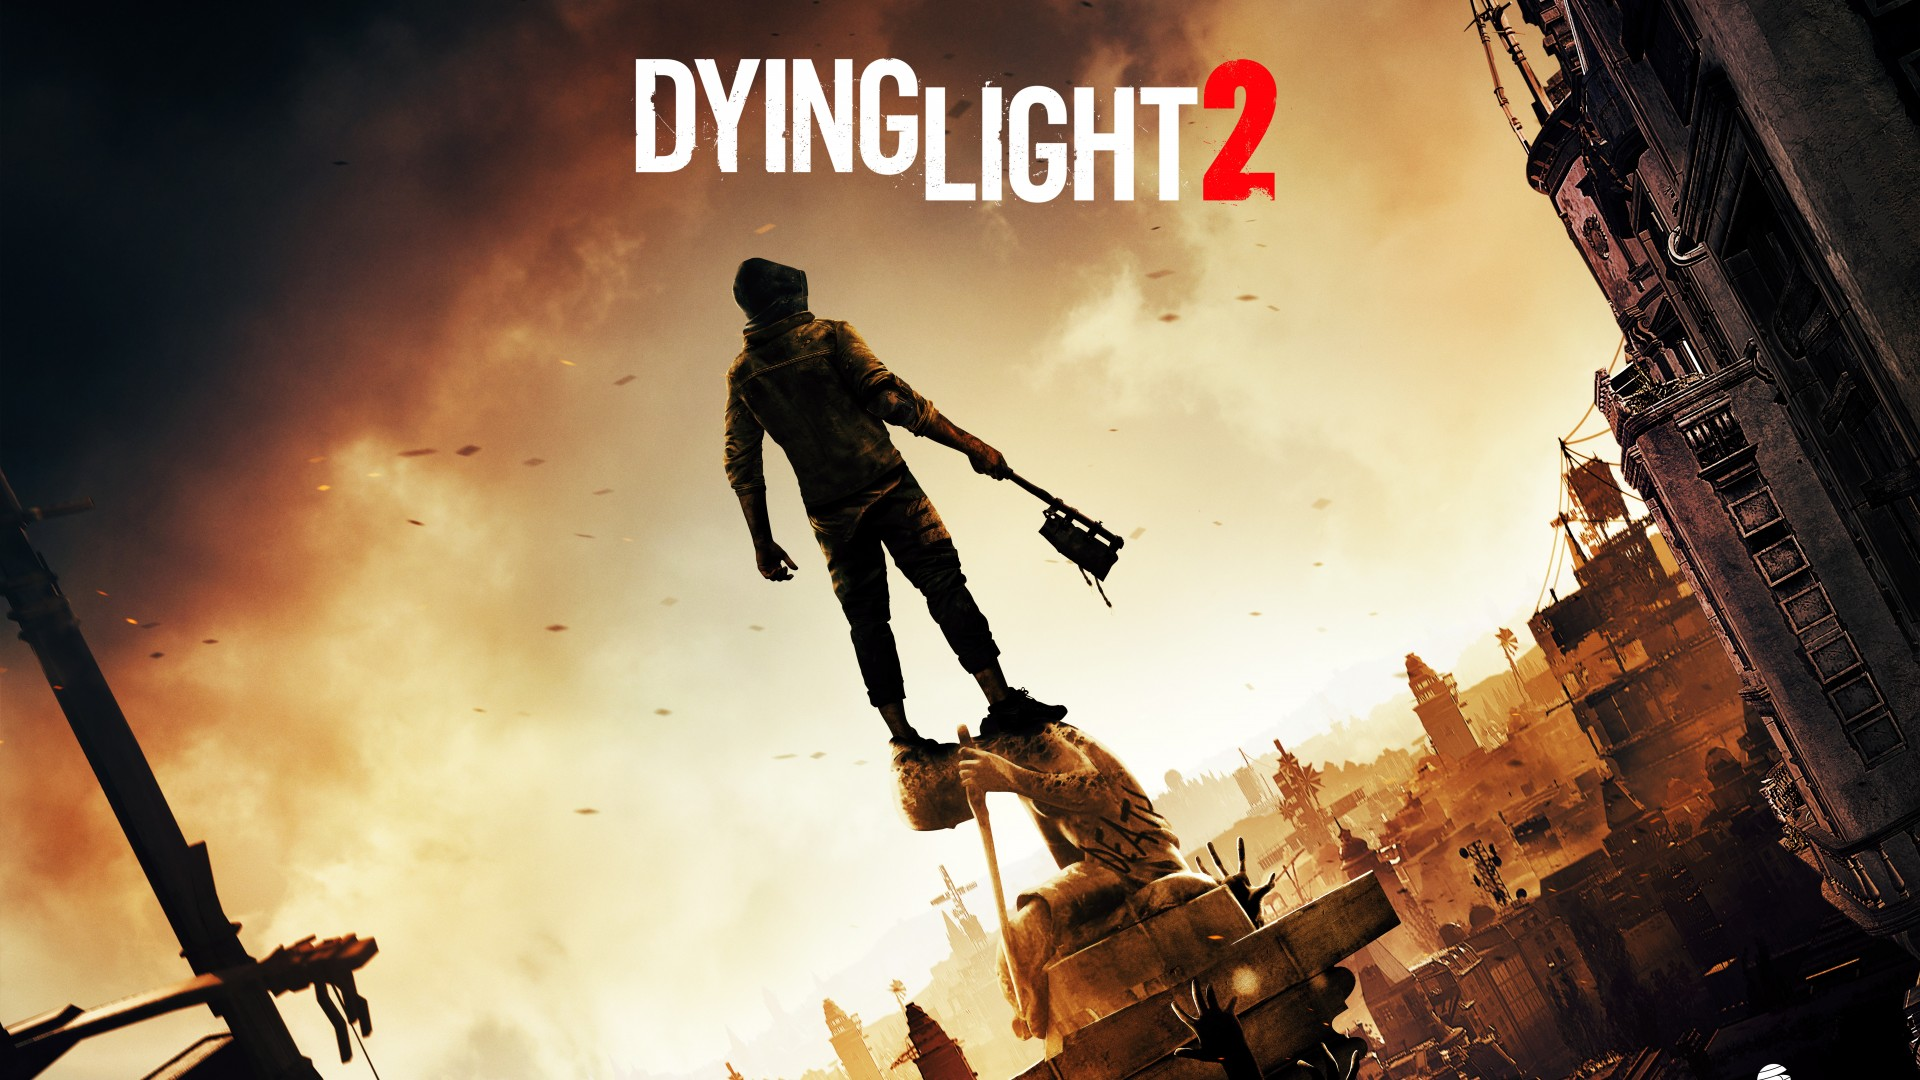 เกม Dying Light 2